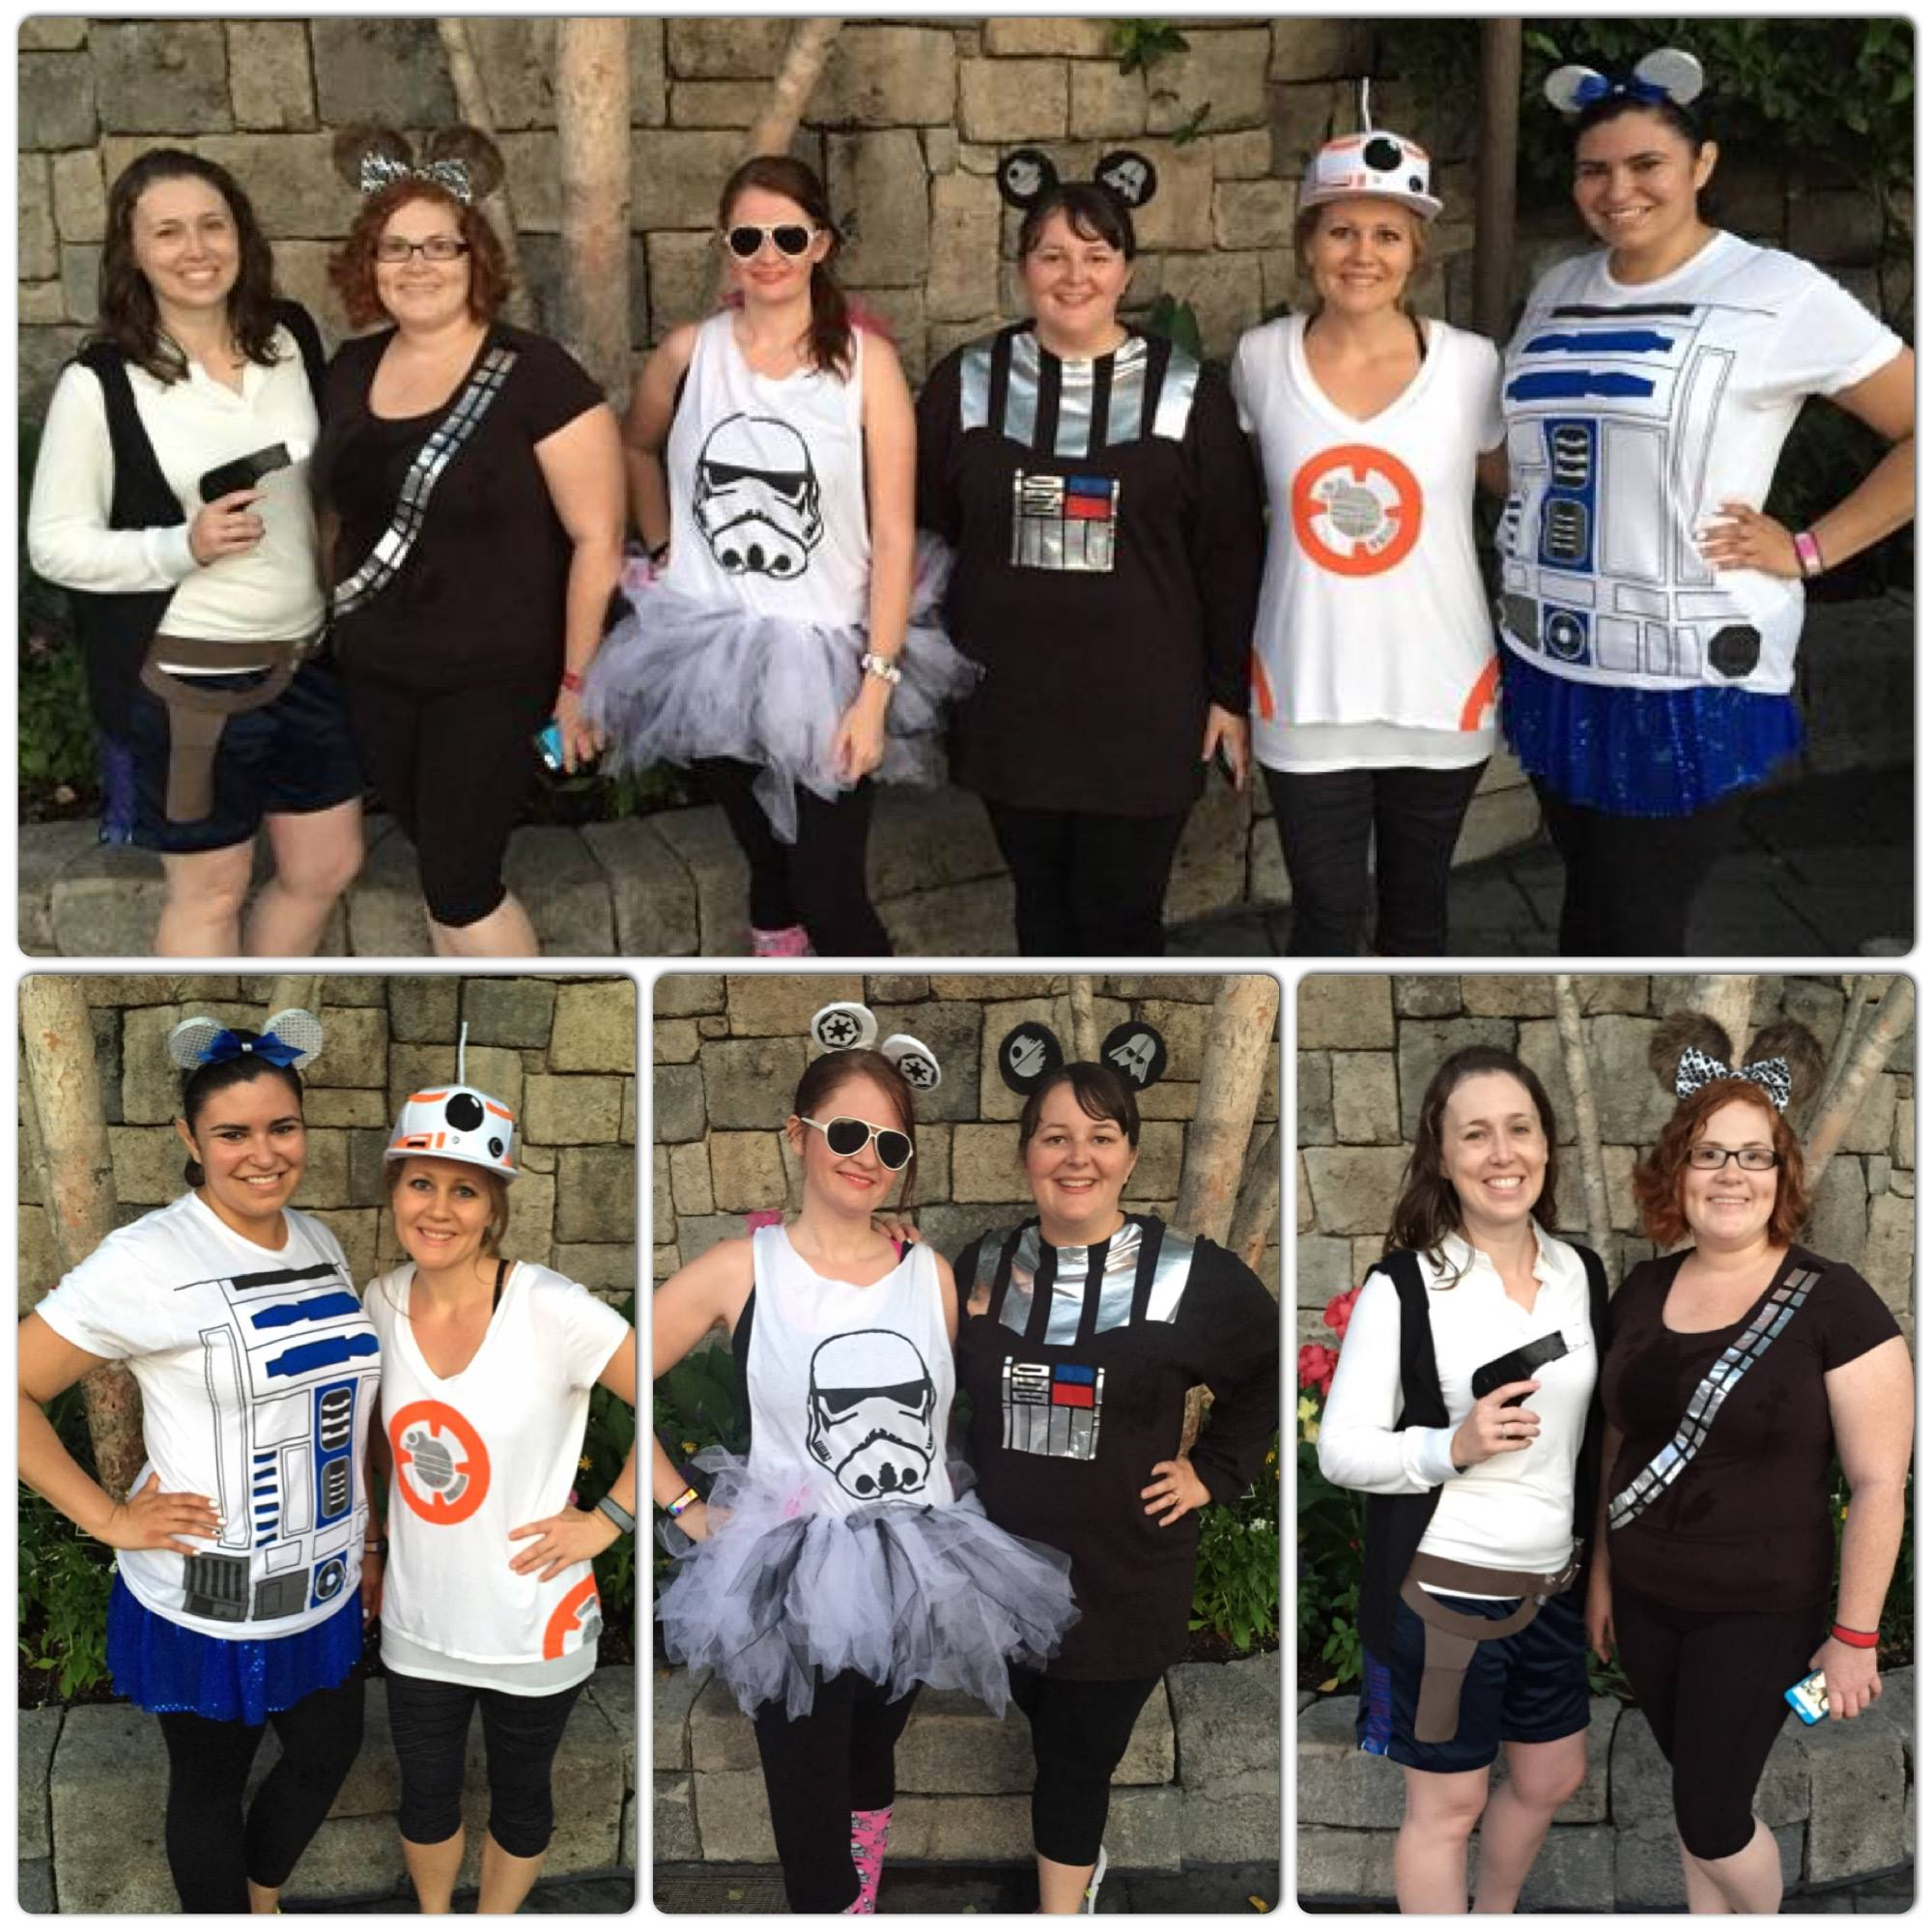 Star Wars Run Disney costume ideas